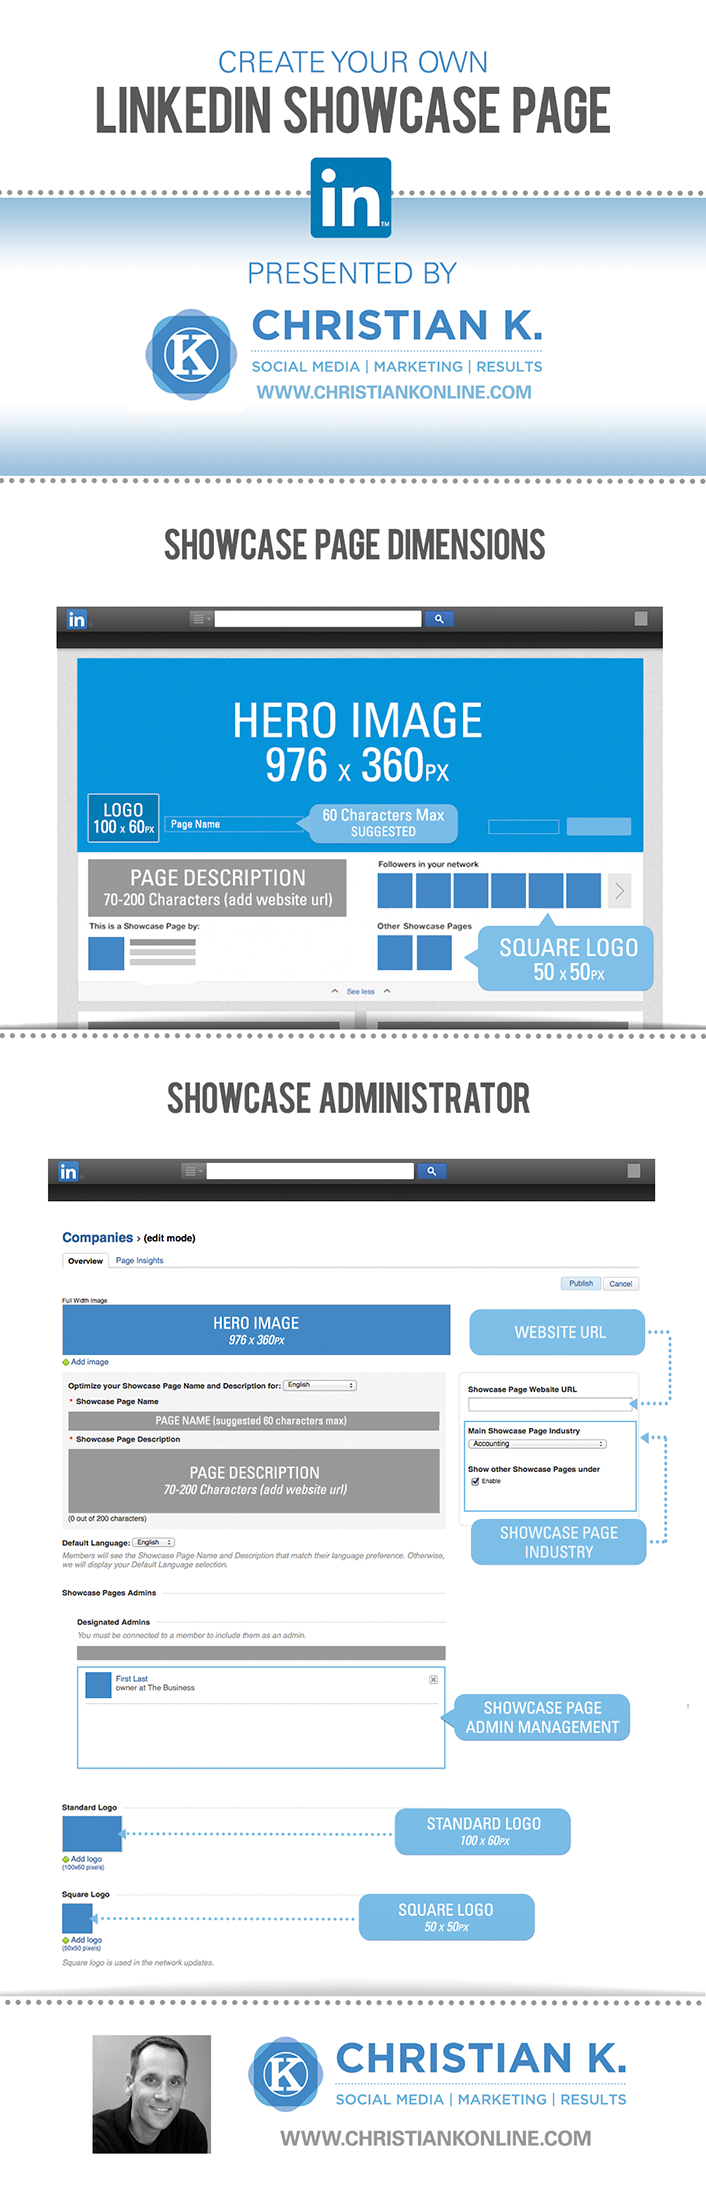 LinkedIn afmetingen Showcase page